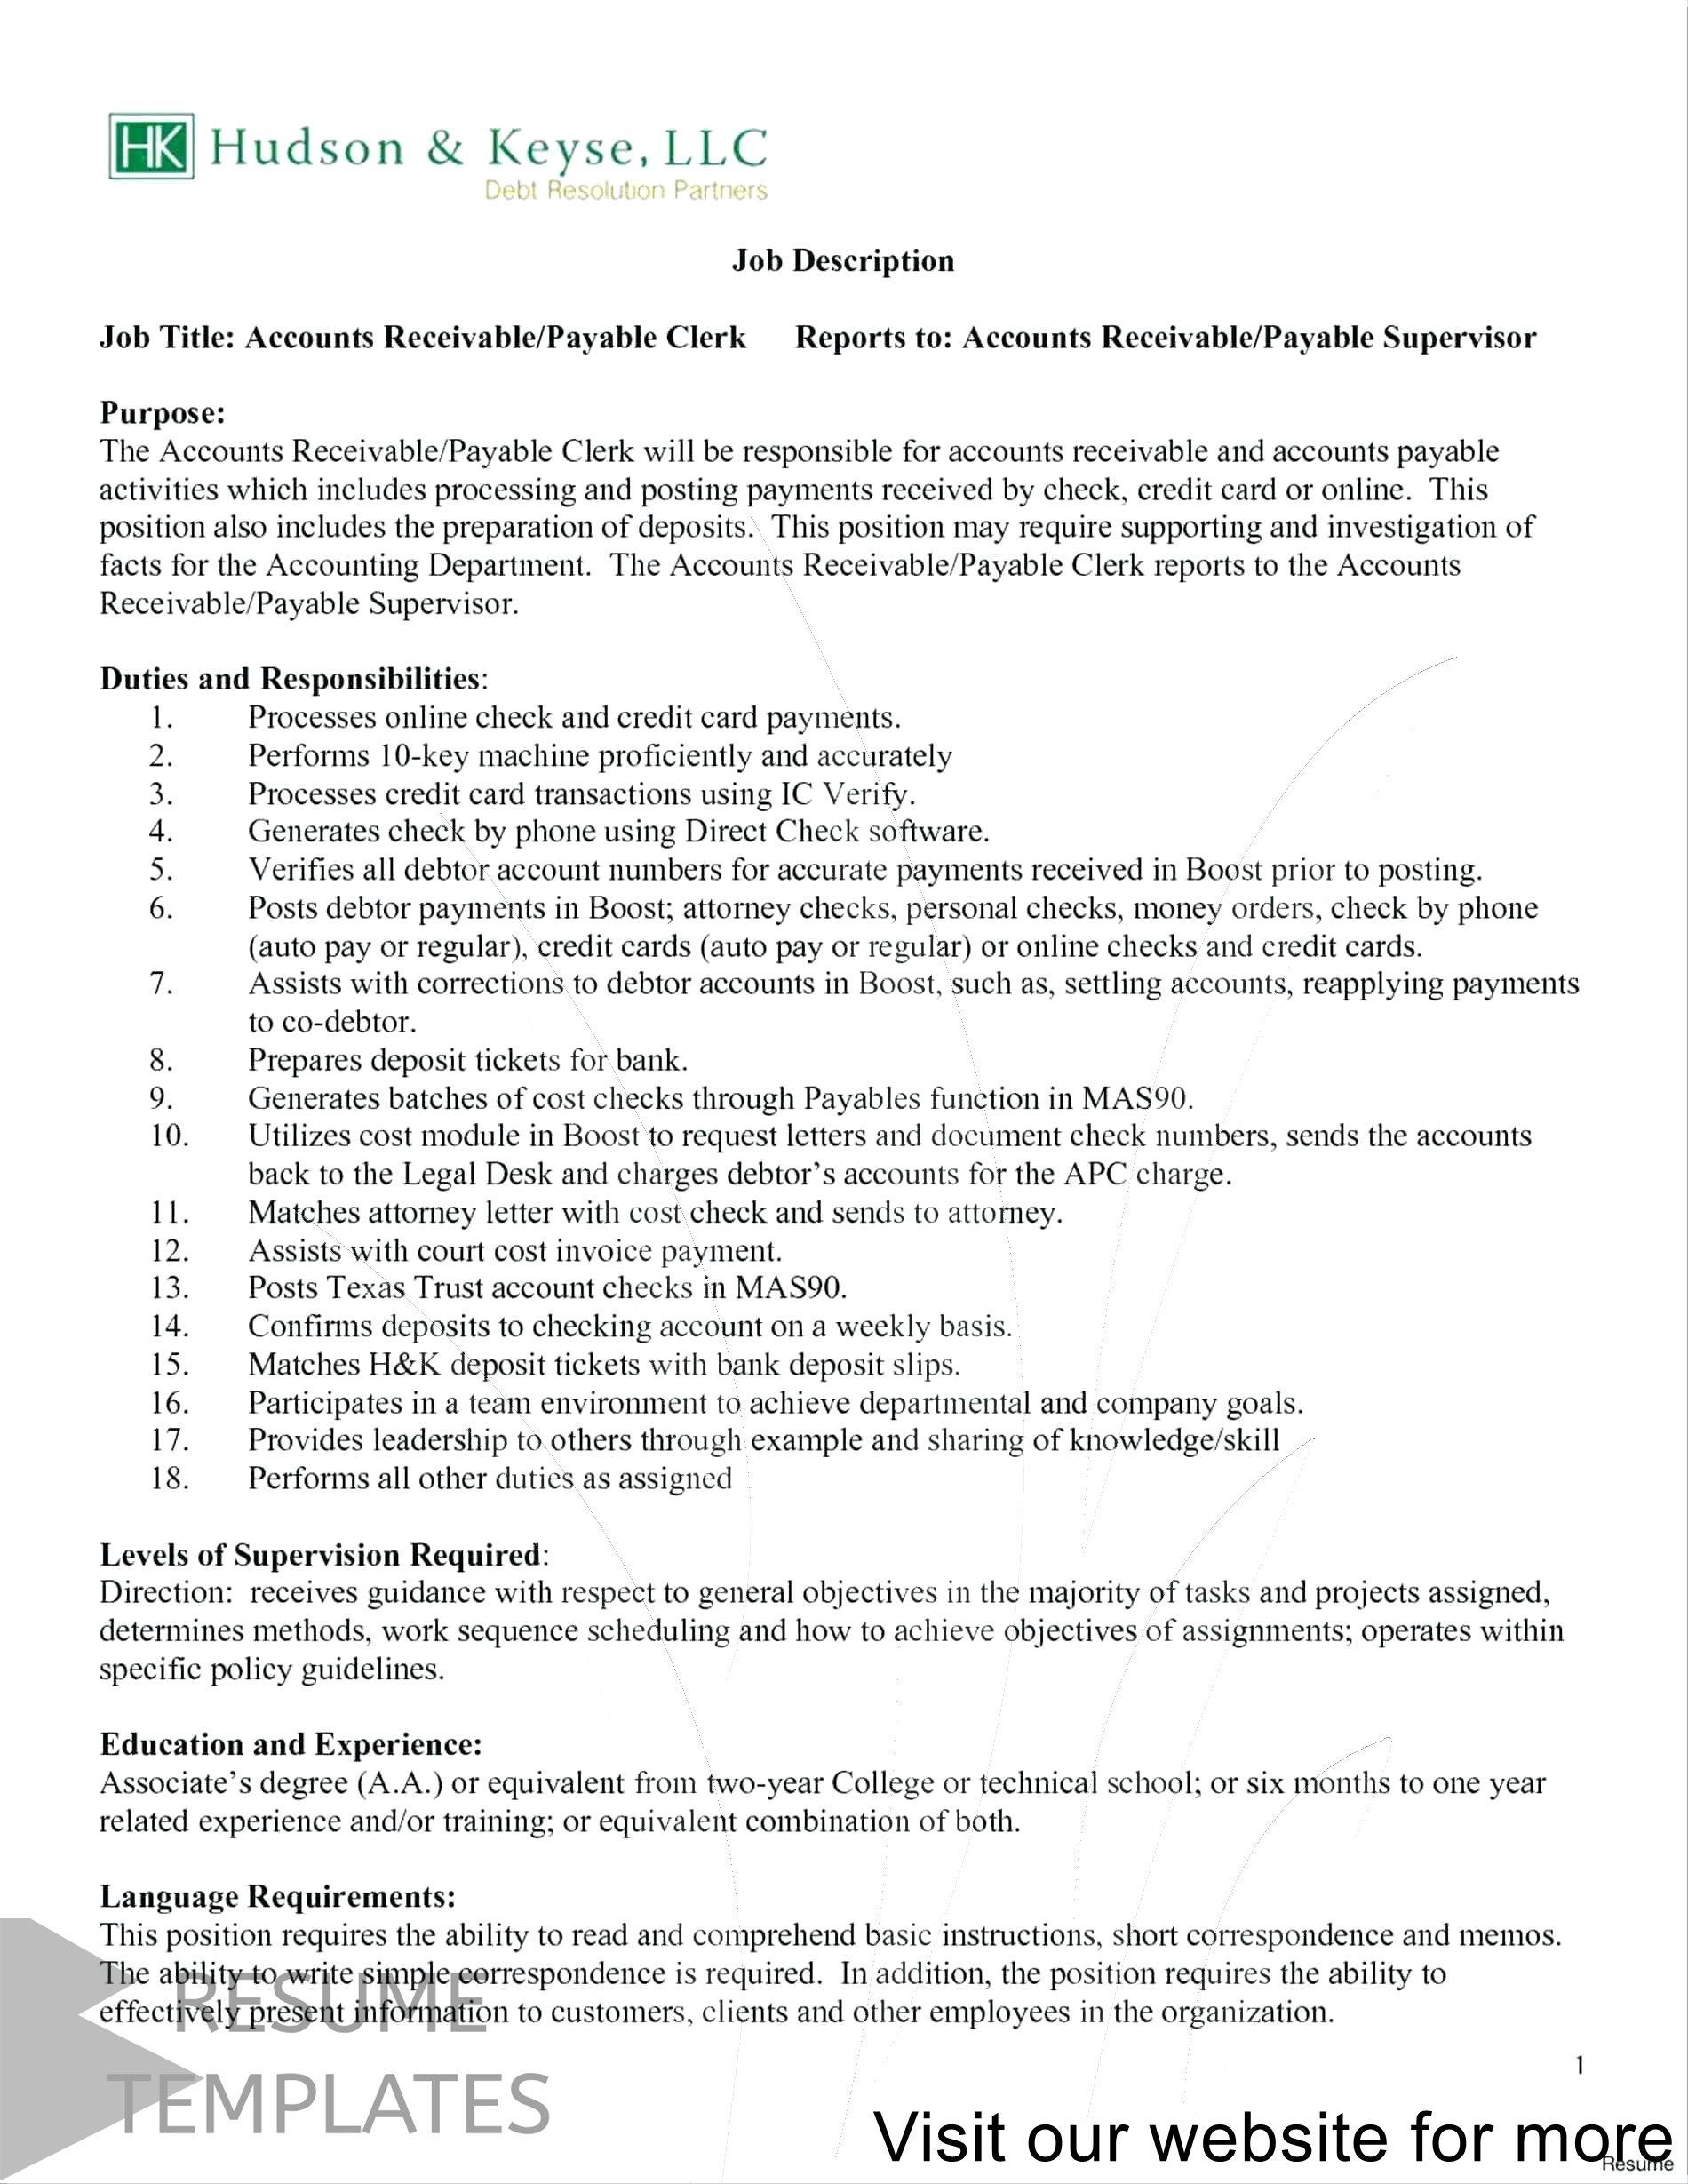 Resume Template Attorney Professional In 2020 With Images Job